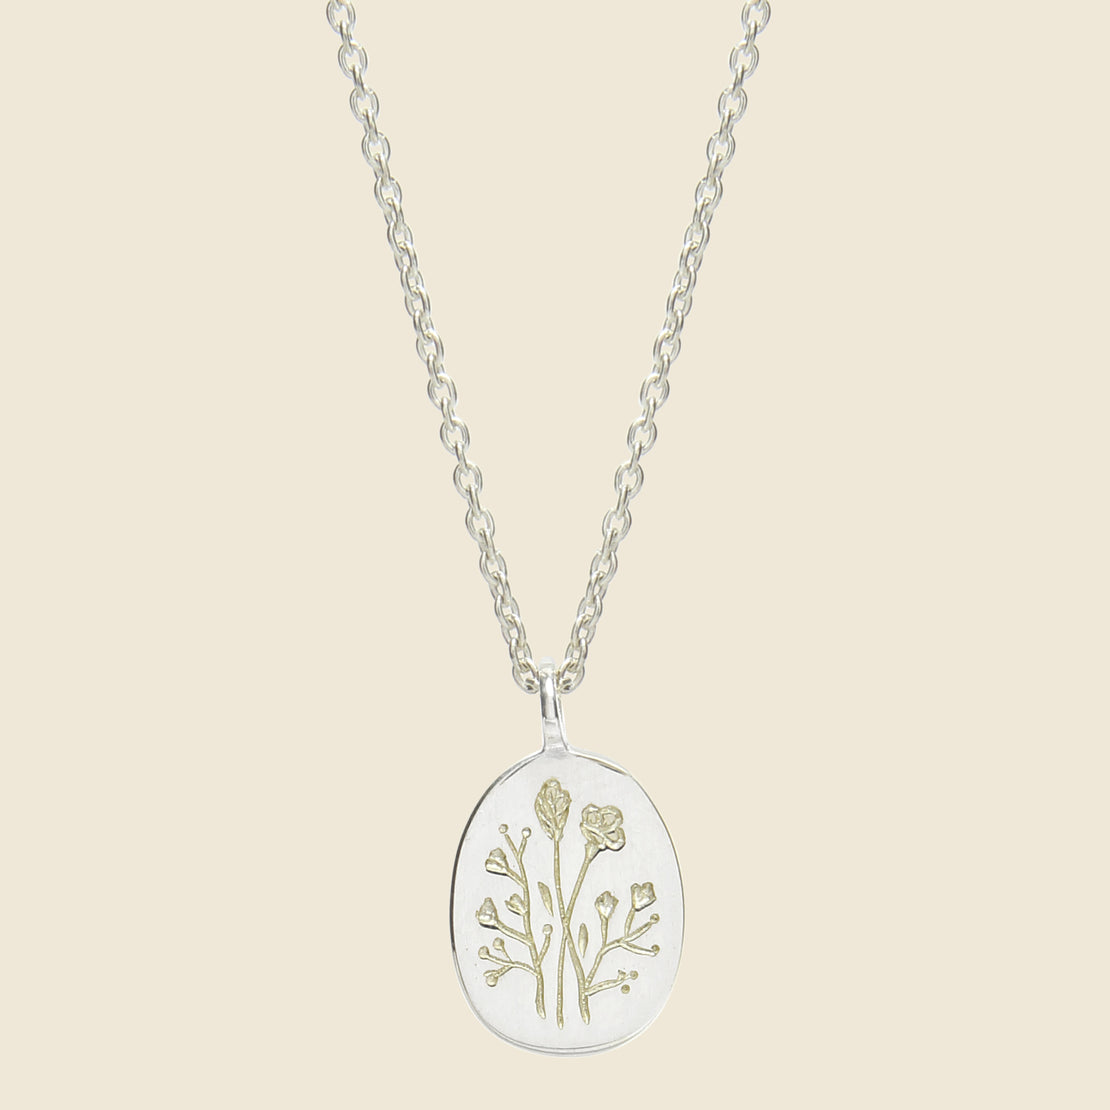 Claus Wildflower Necklace - Silver